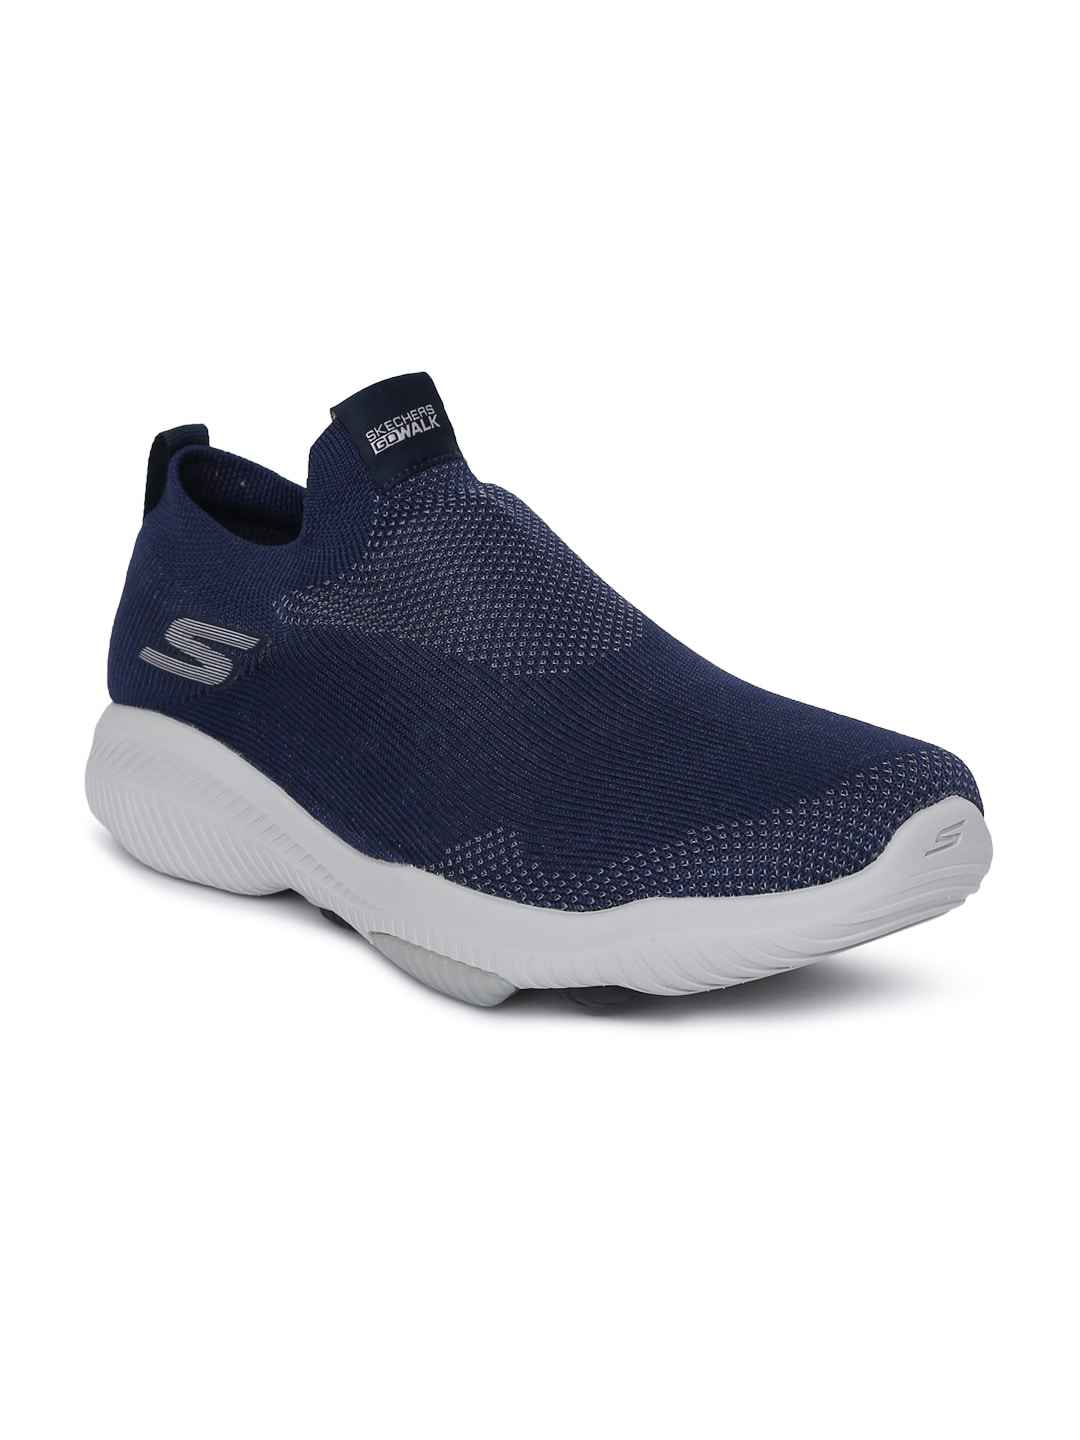 Buy Footwear PricesMyntra Online Best Skechers At ZTikOPXu